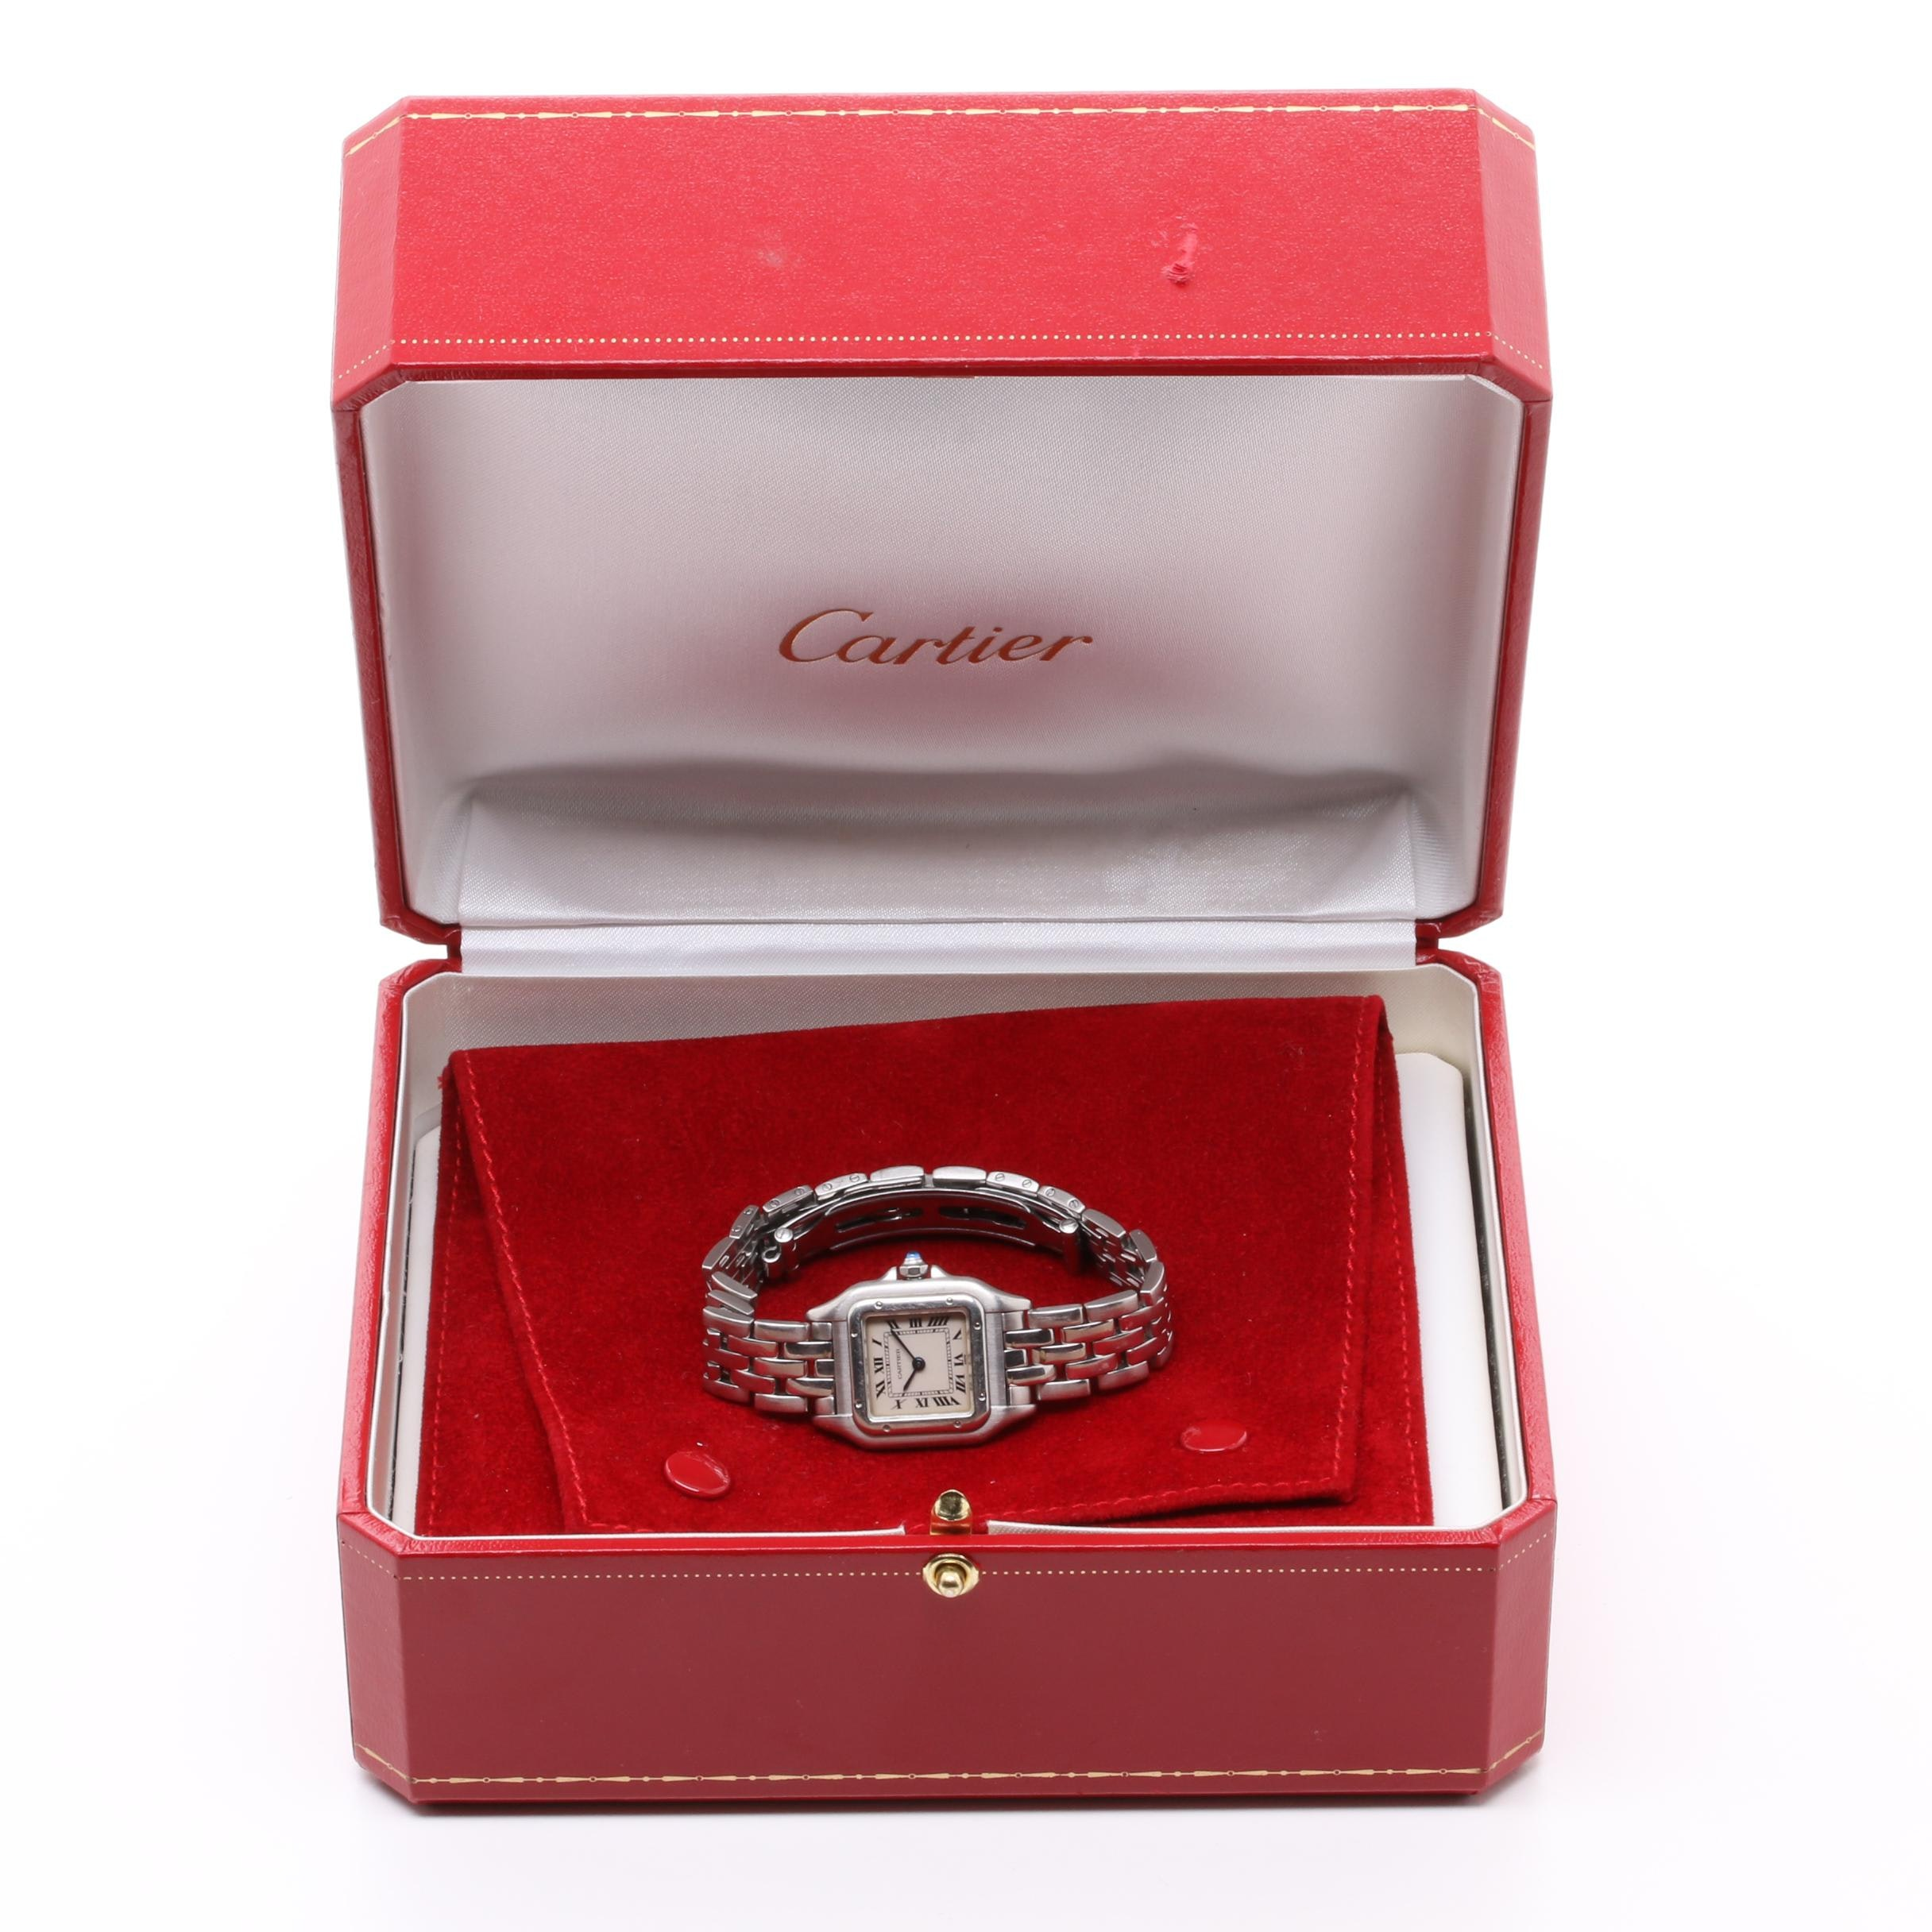 Cartier Panthère 1320 Stainless Steel Wristwatch